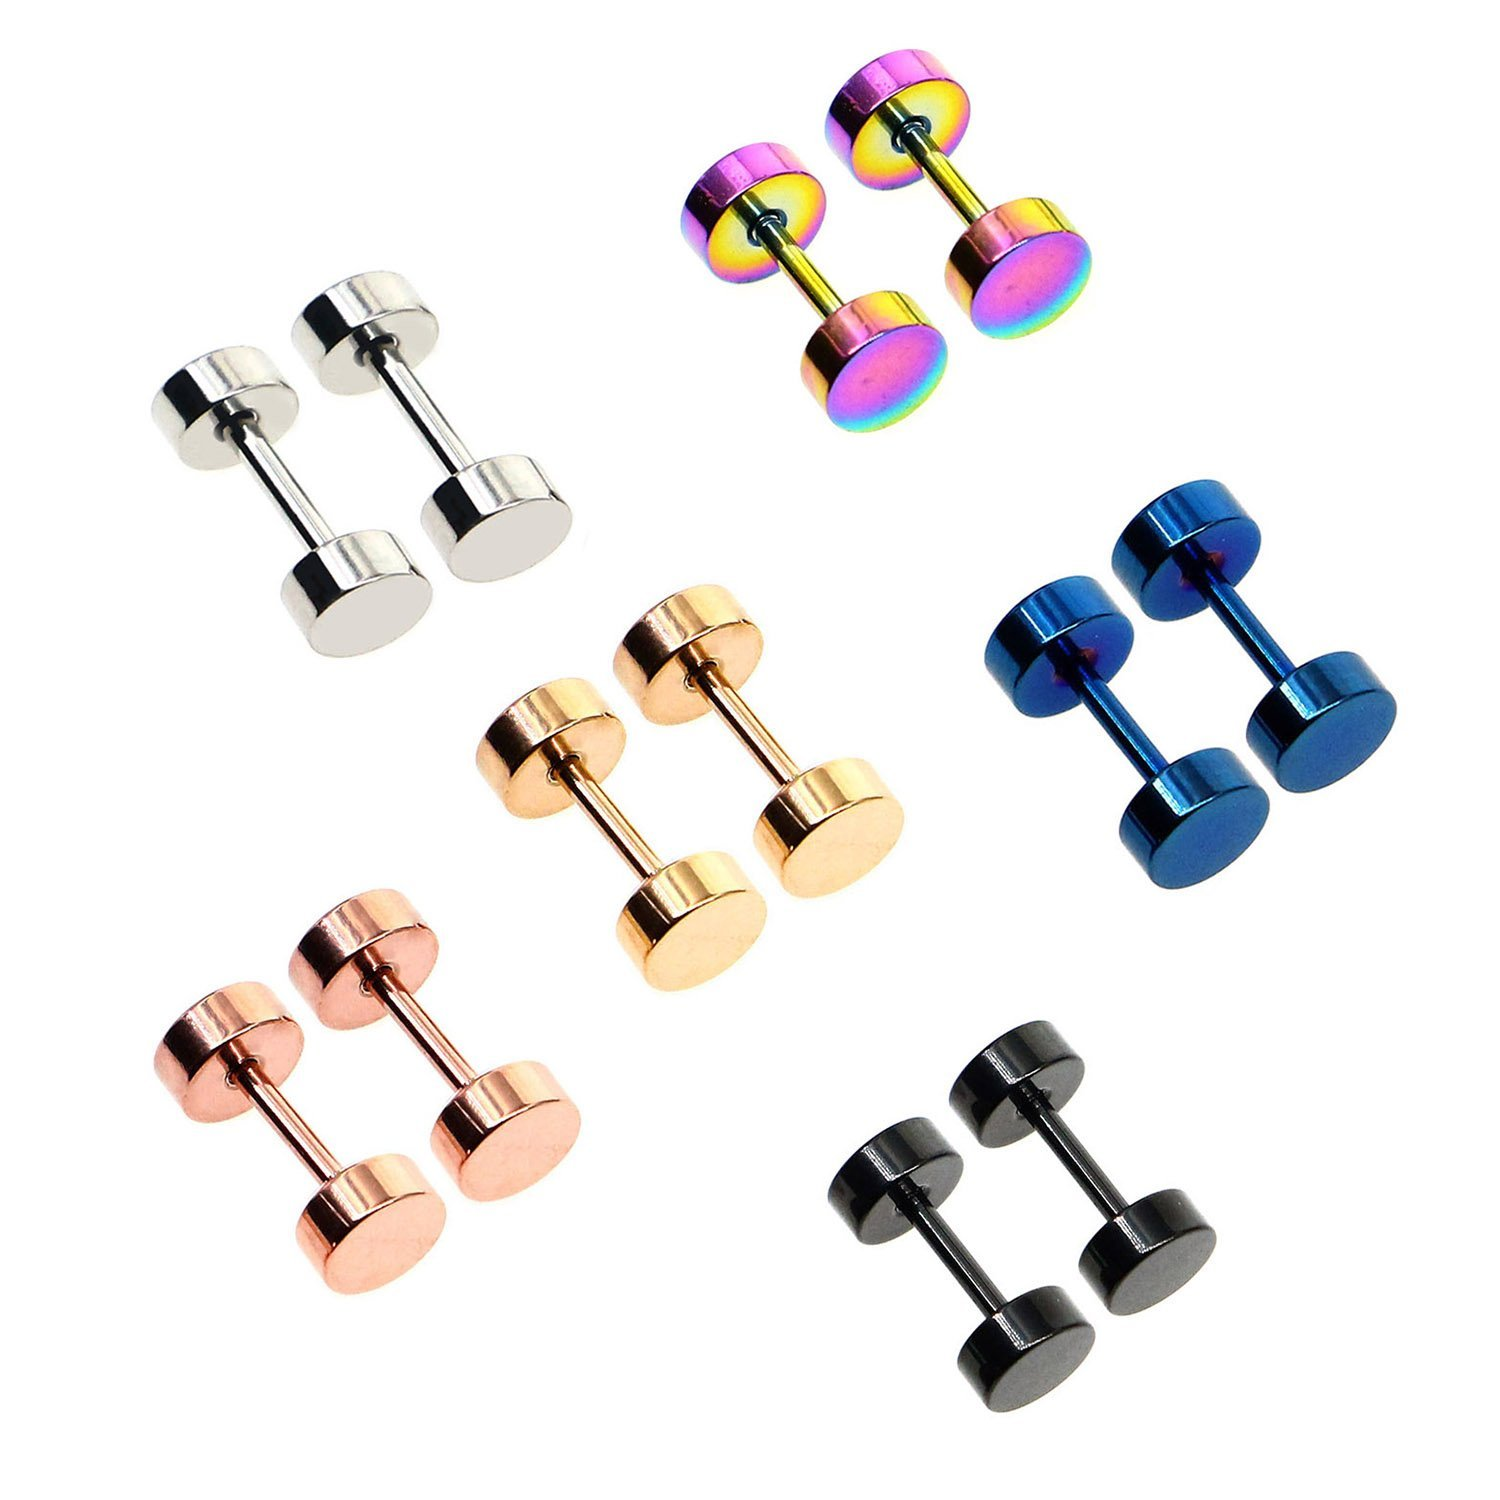 Awinrel 4mm-14mm Mens Womens Stud Earrings Fake Plugs Cheater Illusion Ear Gauges Tunnel 7 Pairs